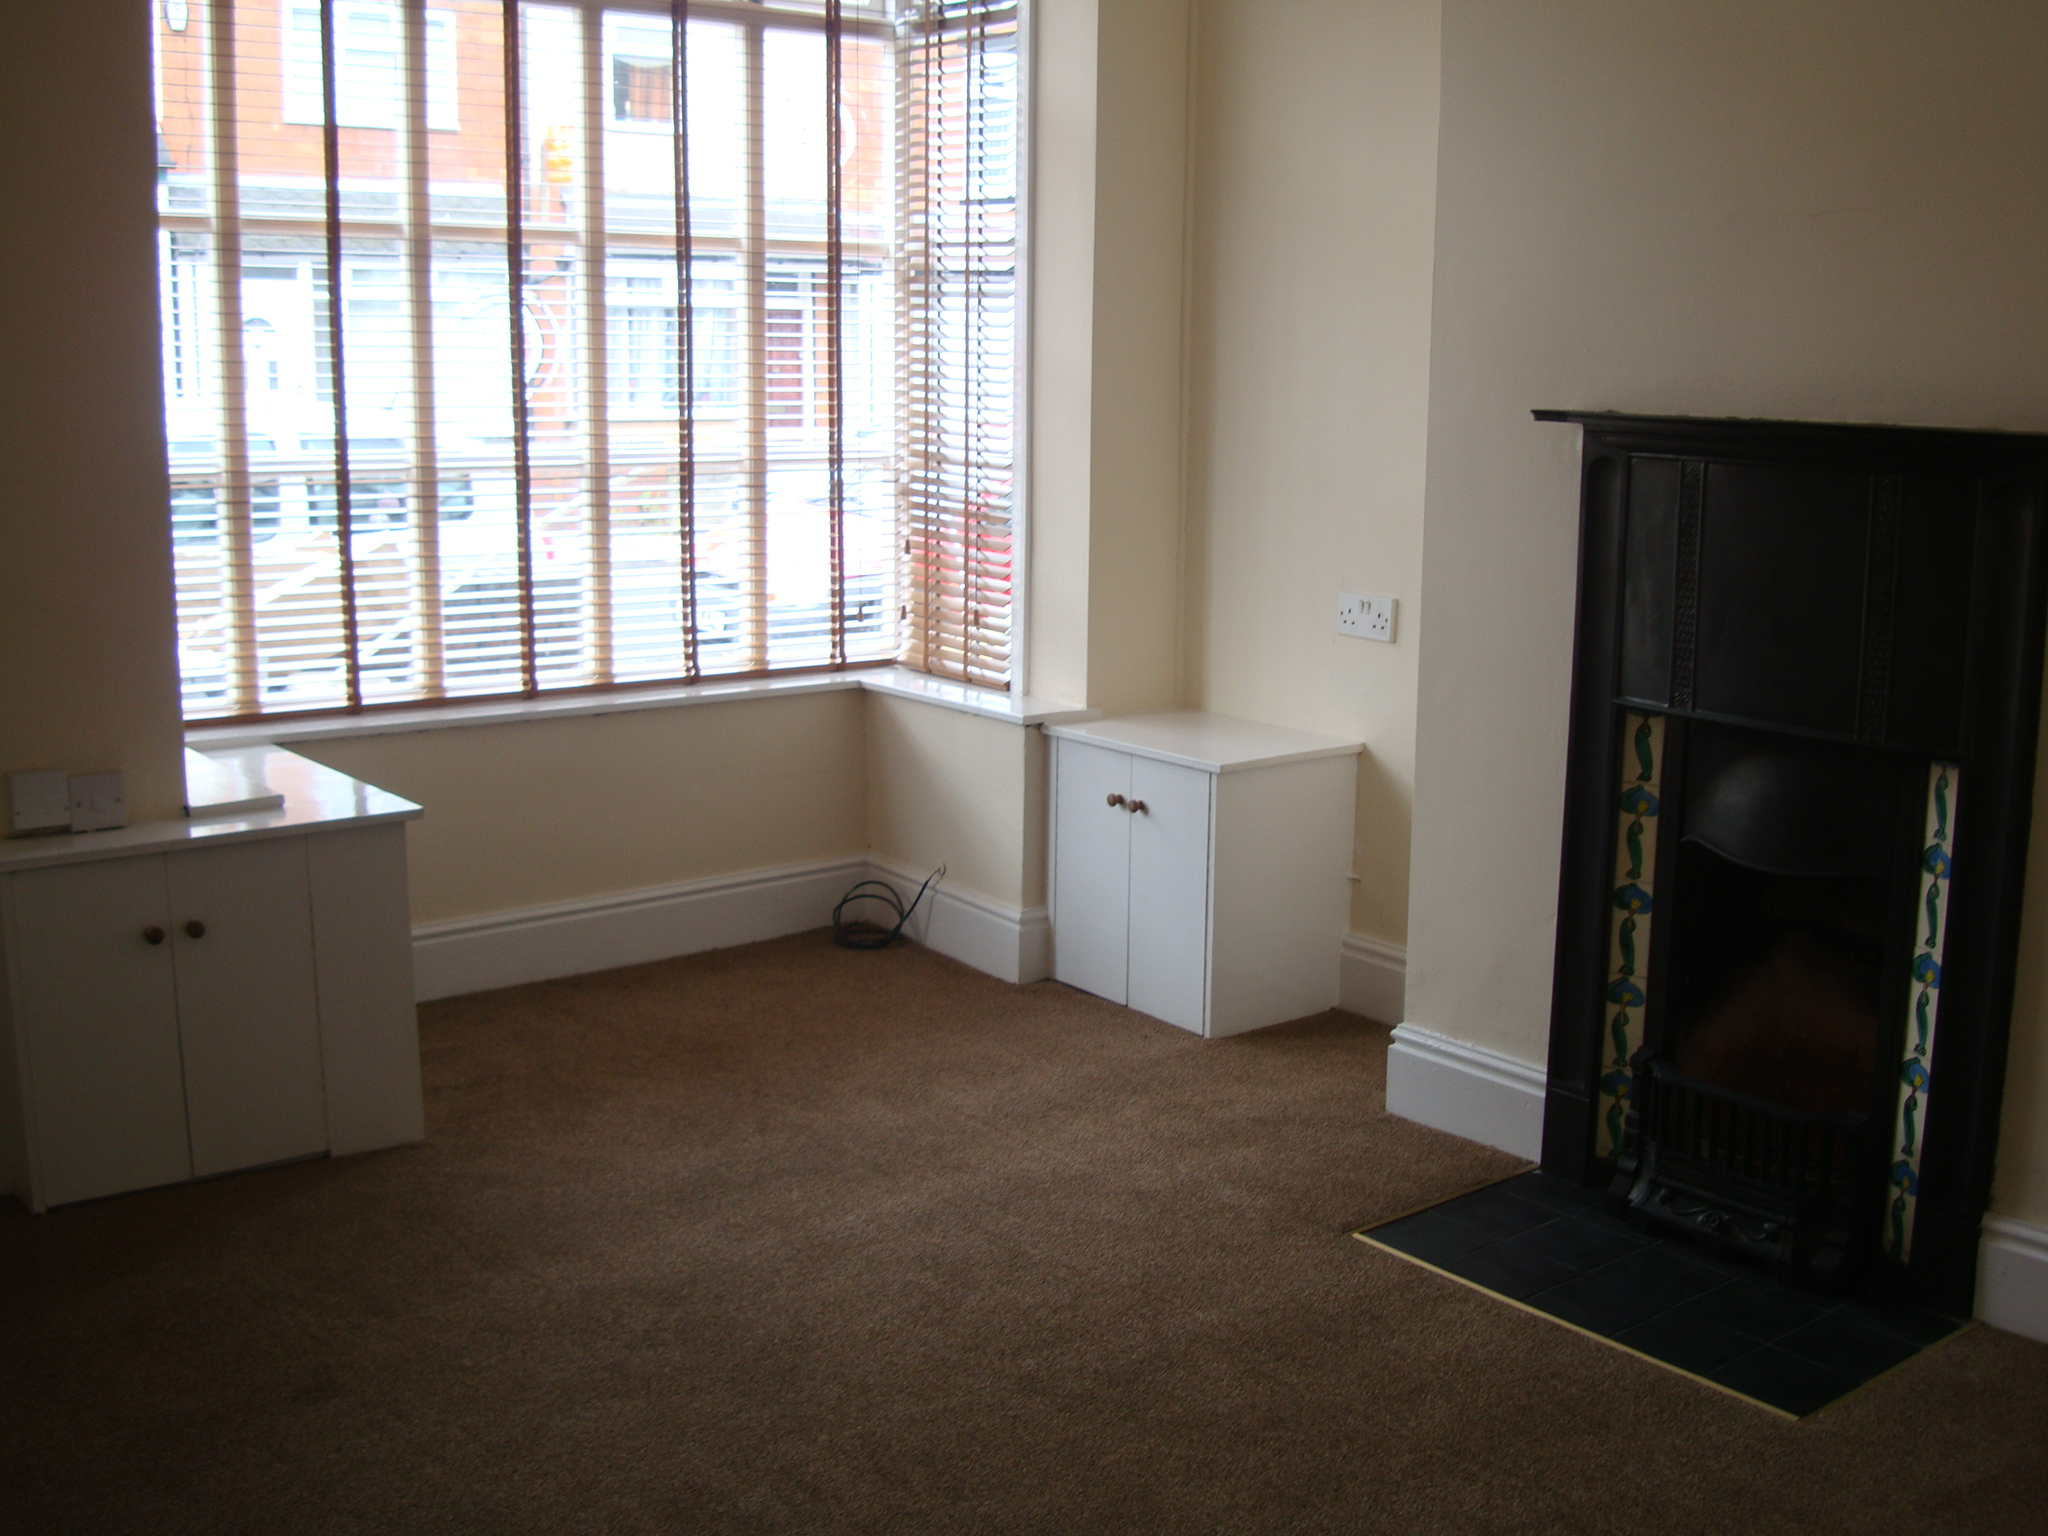 Admirable 3 Bed House To Rent Milner Road Birmingham B29 7Rl Download Free Architecture Designs Embacsunscenecom